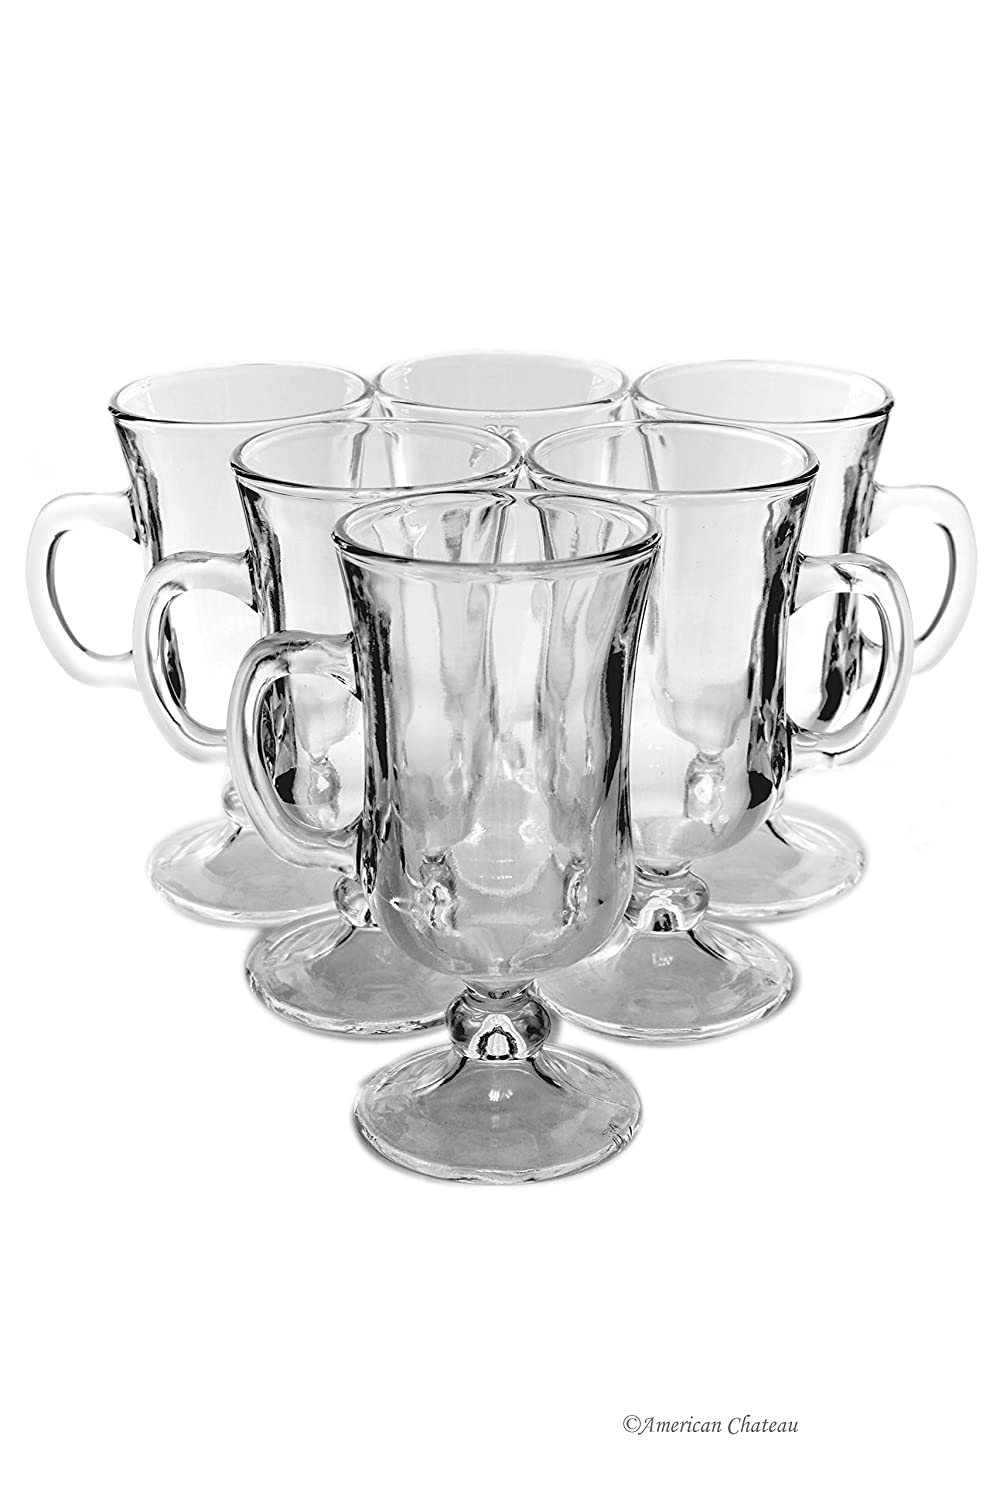 Set 6 Footed Clear Small 4.5oz Specialty Coffee Espresso Turkish Tea Glasses American Chateau